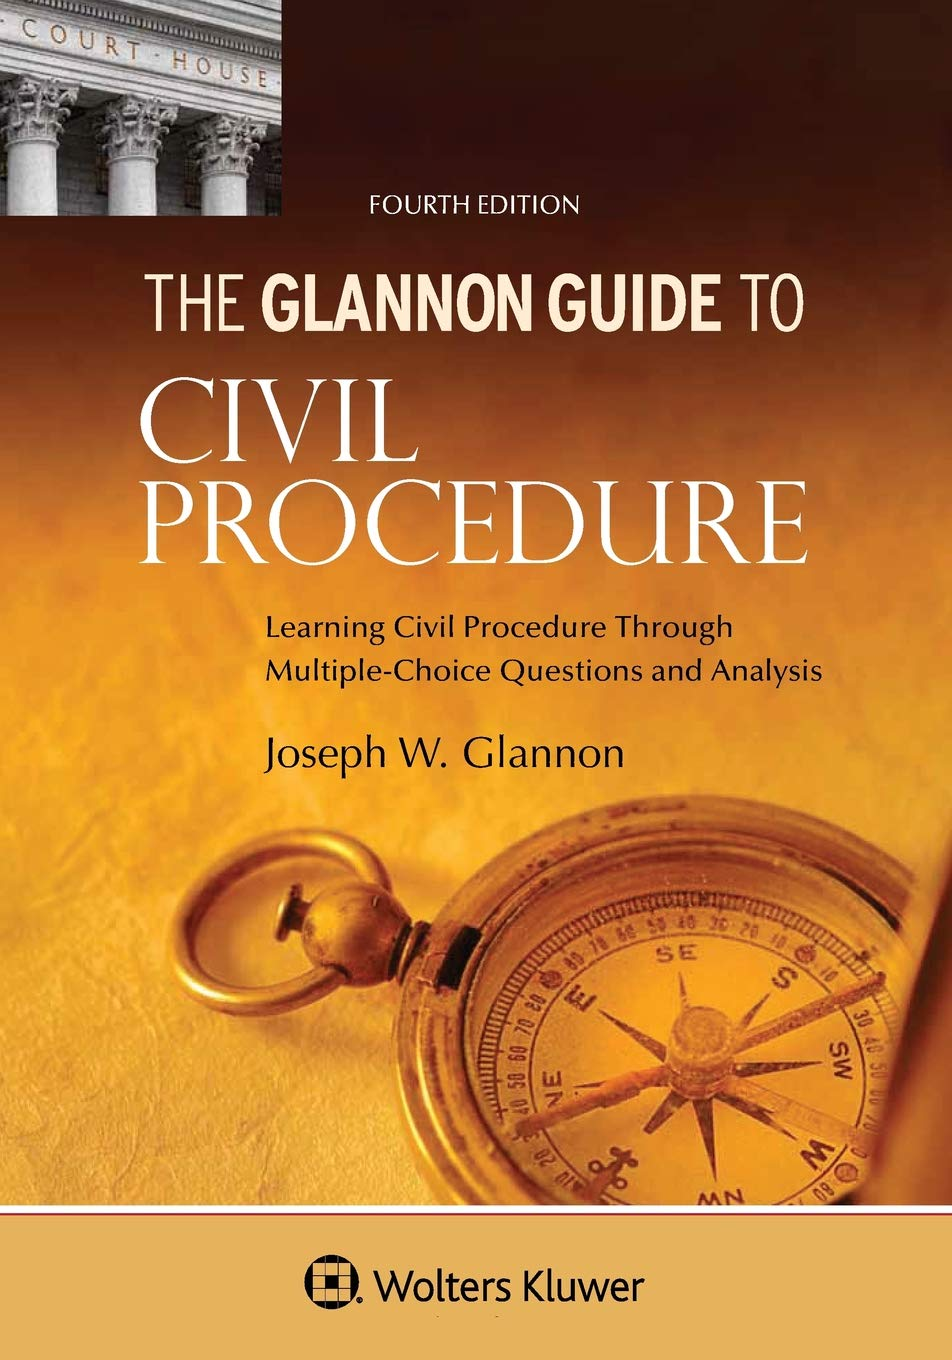 Glannon Guide to Civil Procedure: Learning Civil Procedure Through Multiple-Choice Questions and Analysis (Glannon Guides) by Wolters Kluwer